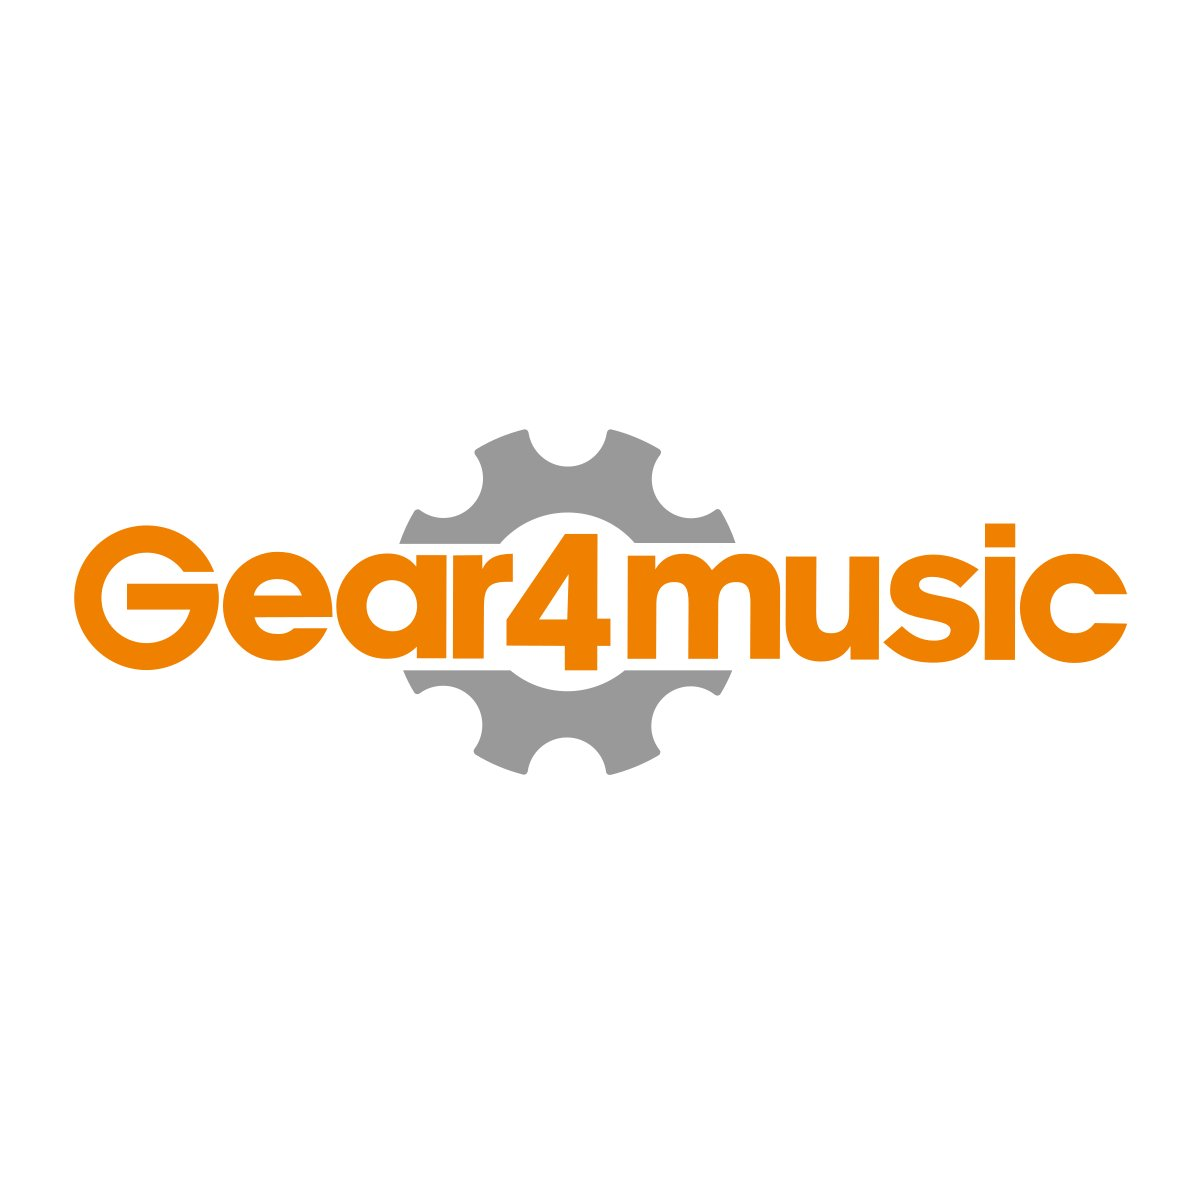 Púa de Guitarra de Gear4music, 0,71 mm